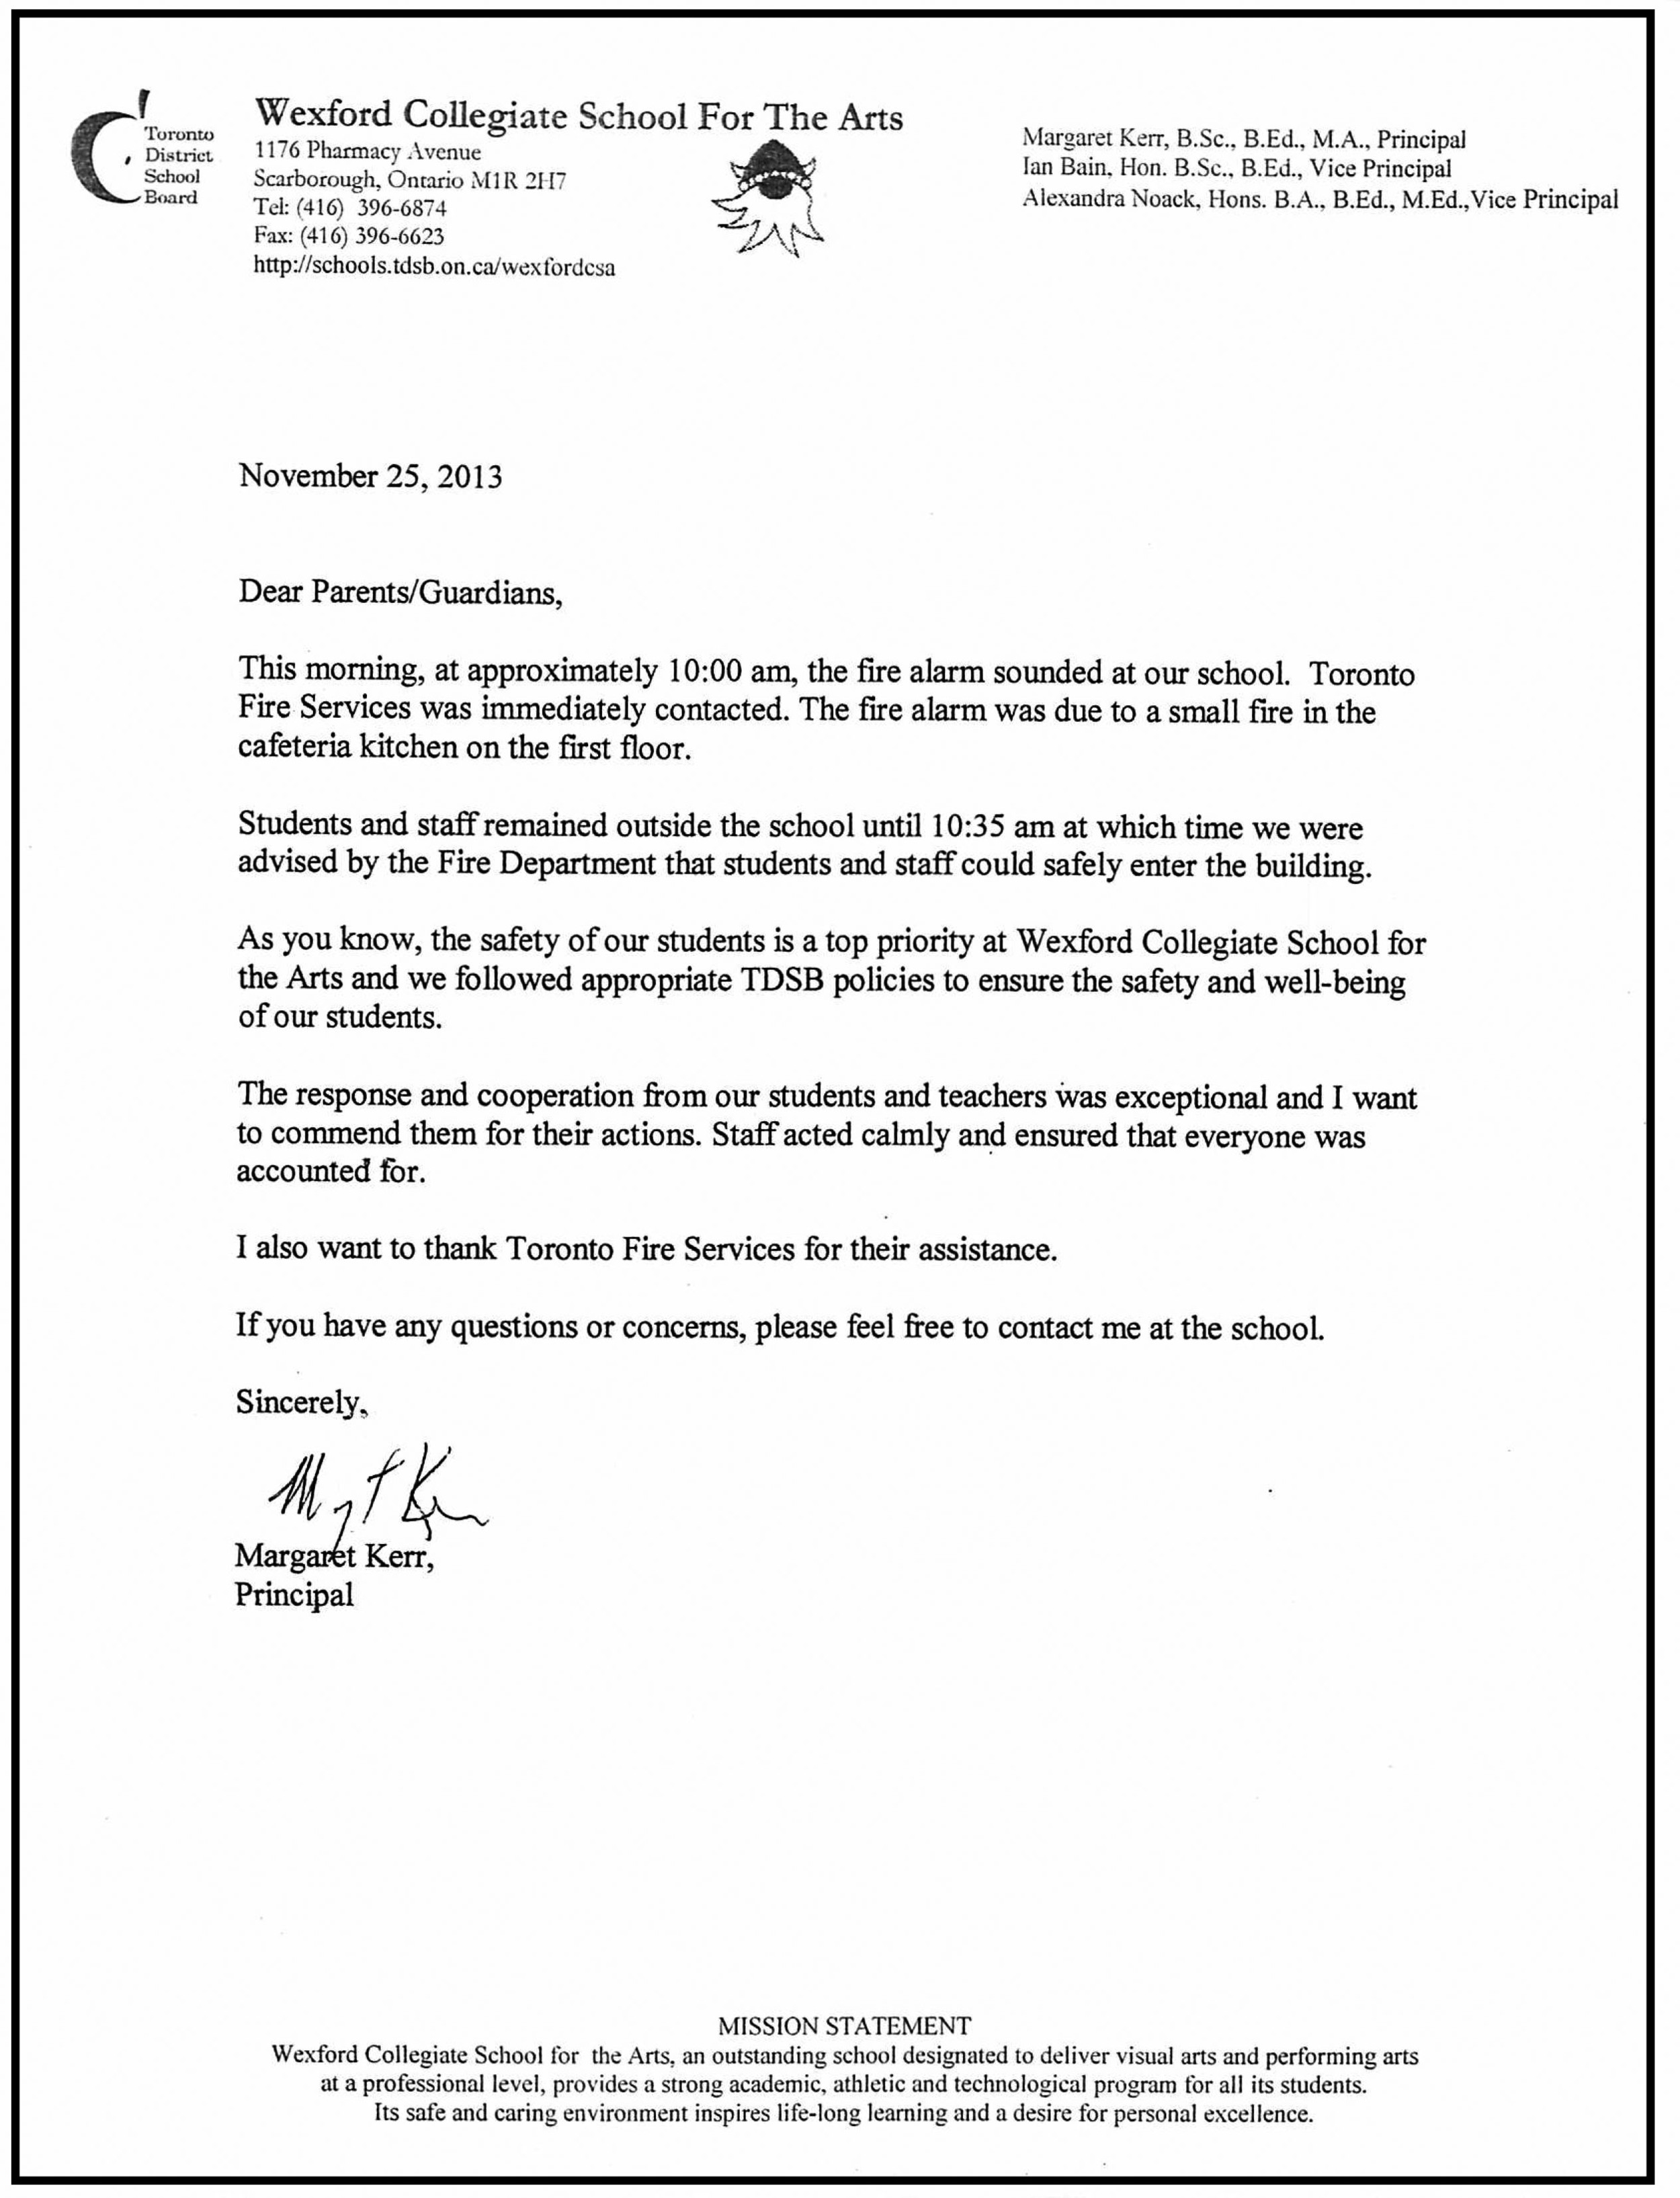 Wexford Letter from the Principal - Nov 25, 2013.jpg